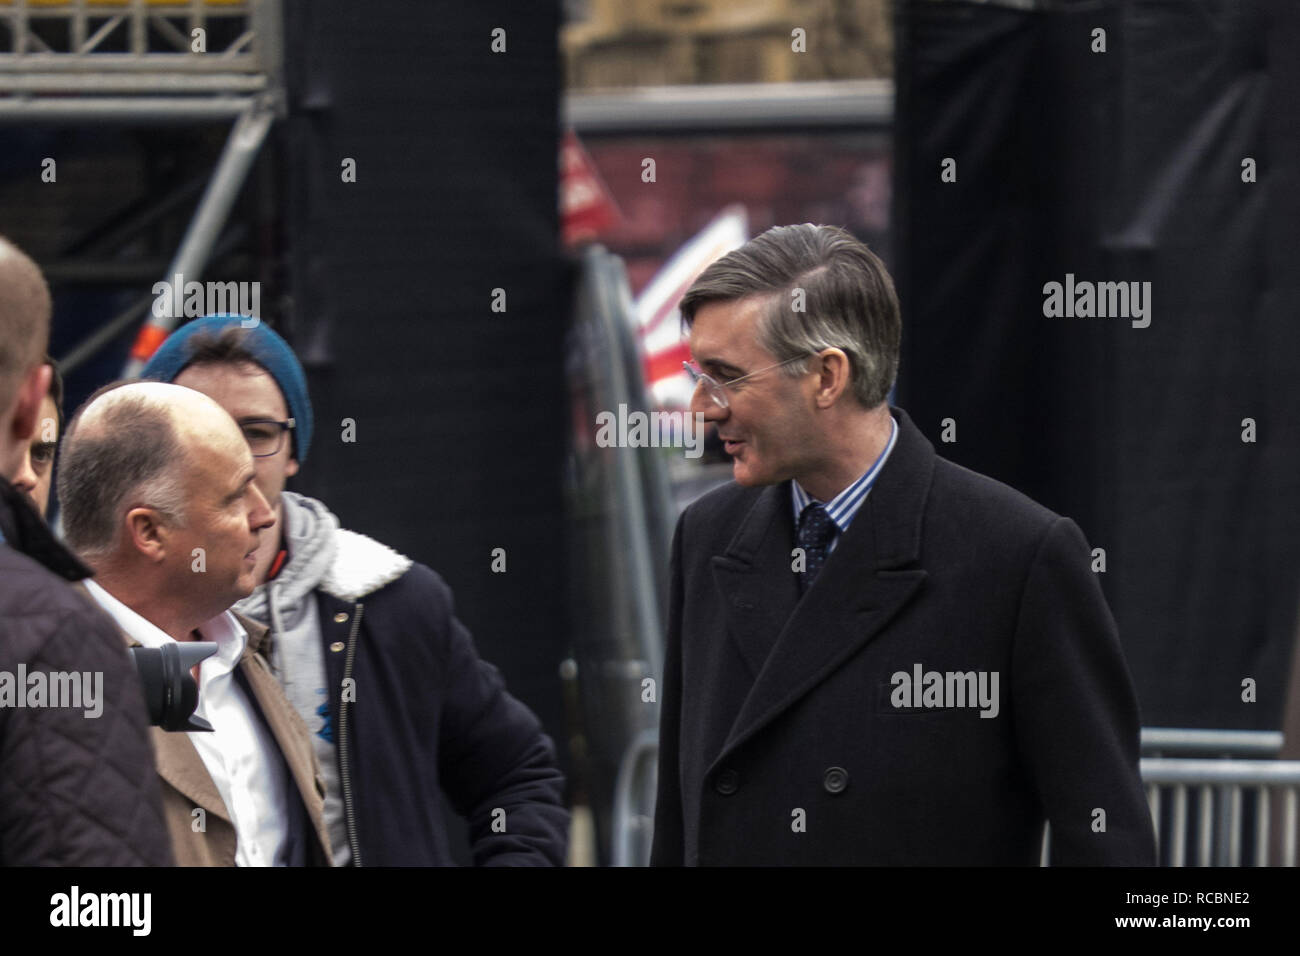 London, UK. 15th January 2019. Jacob Rees-Mogg being interviewed outside Parliament in London, UK. Credit: Jason Wood/Alamy Live News. - Stock Image